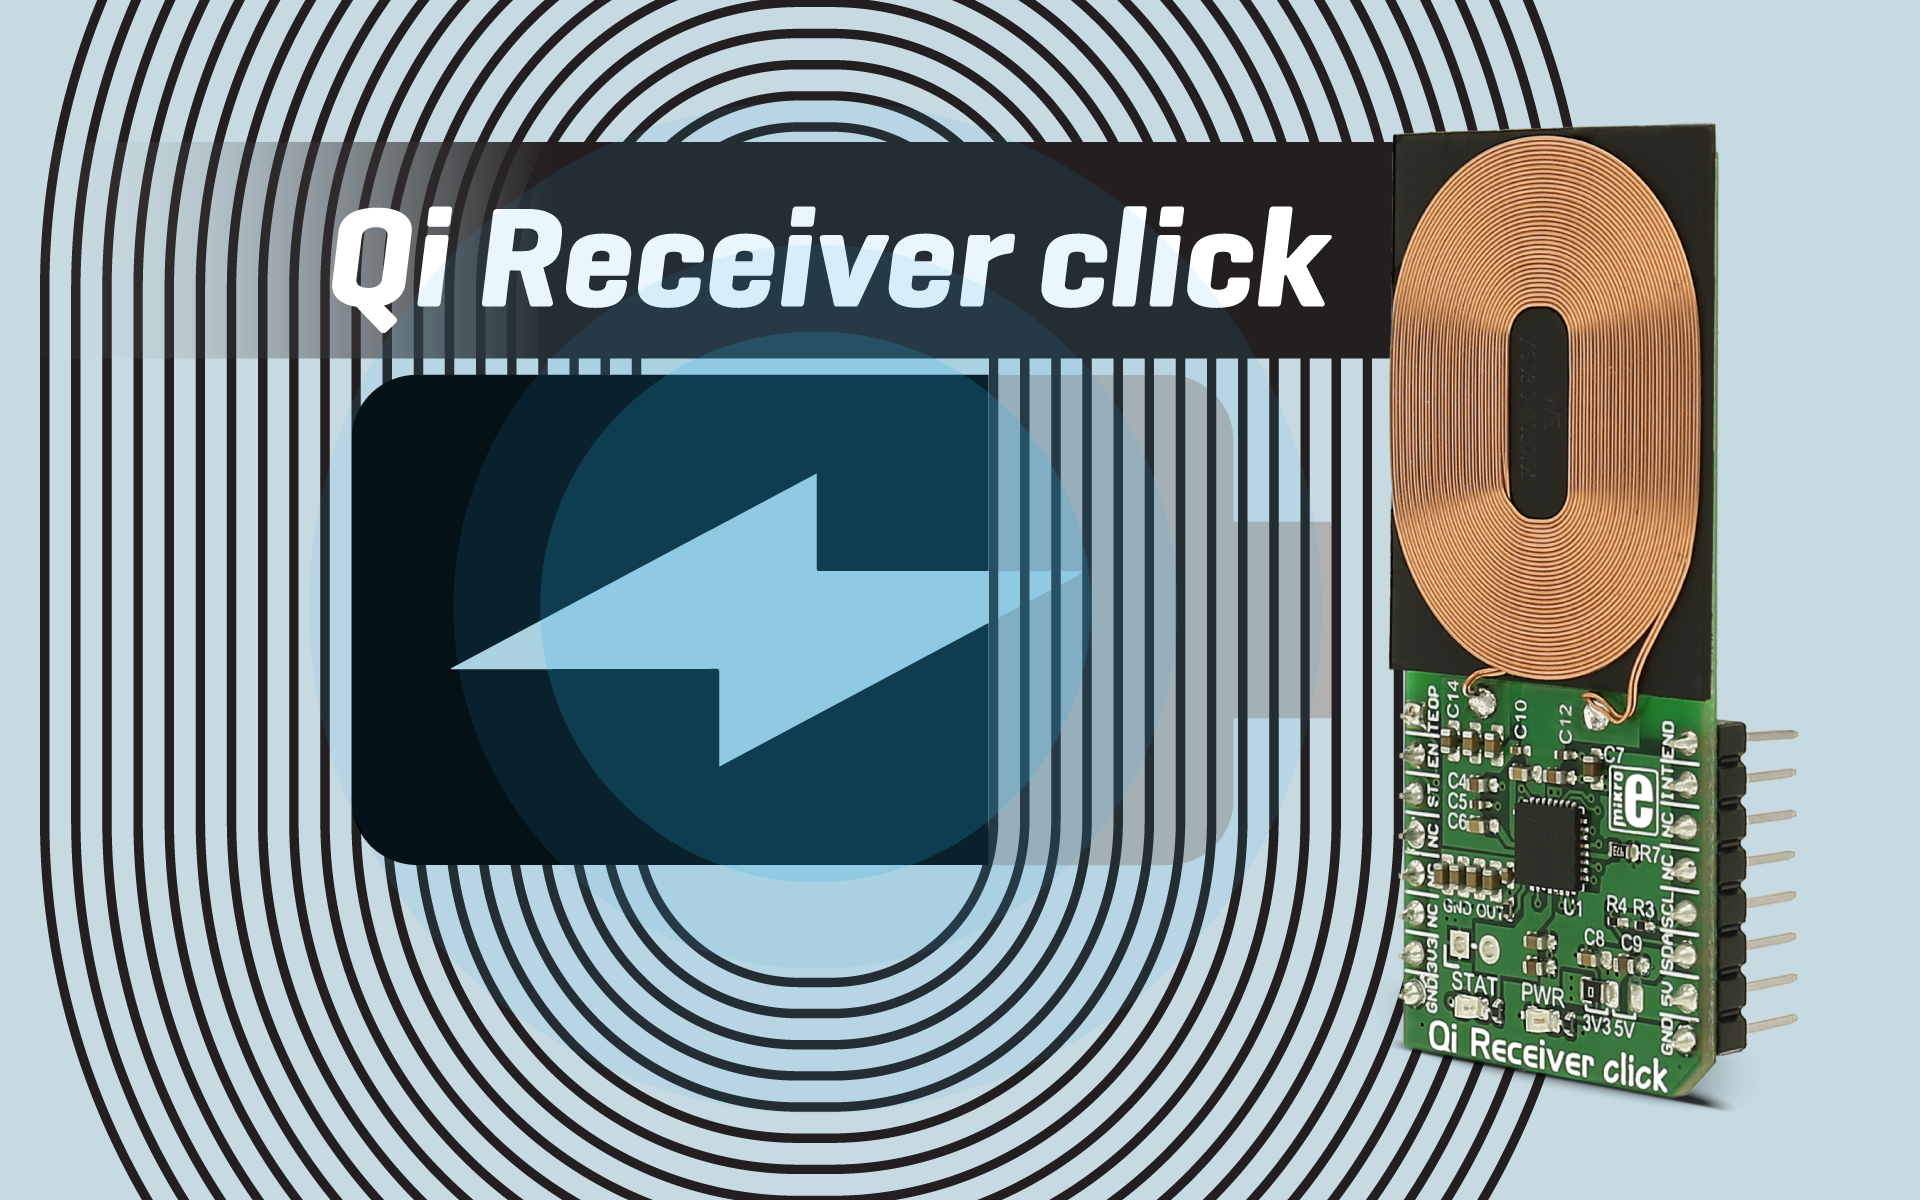 Qi Receiver click - Let the Qi force be with you!